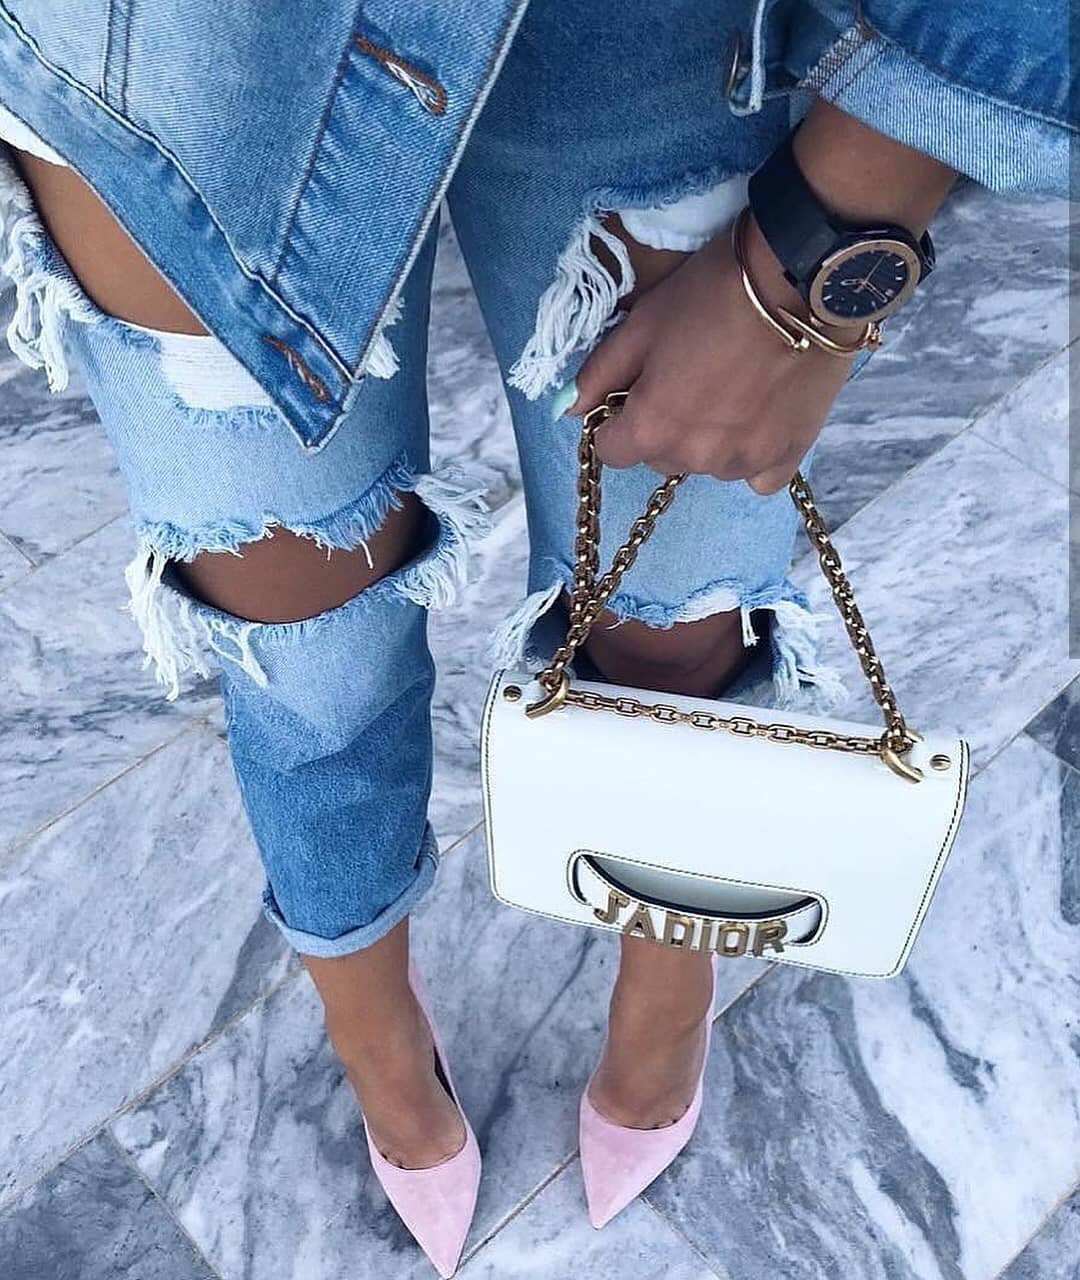 Double Denim Look With Blush Heels And White Clutch Bag For Summer 2020